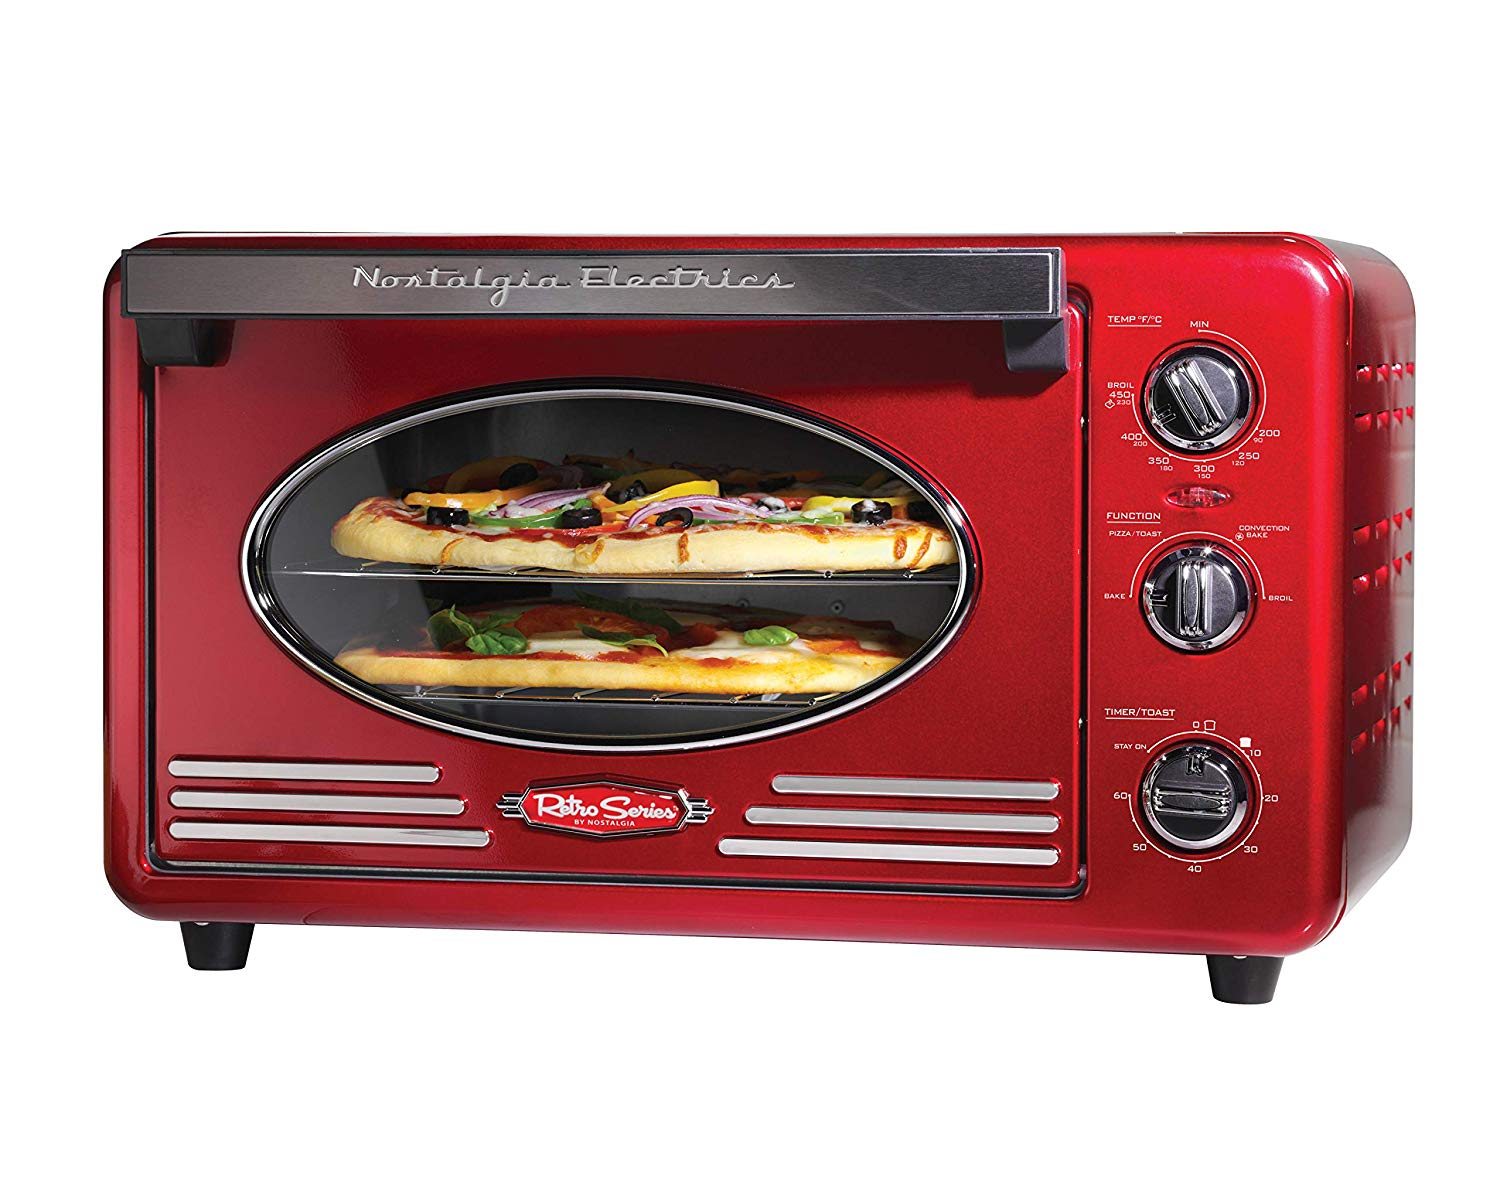 Nostalgia best convection oven